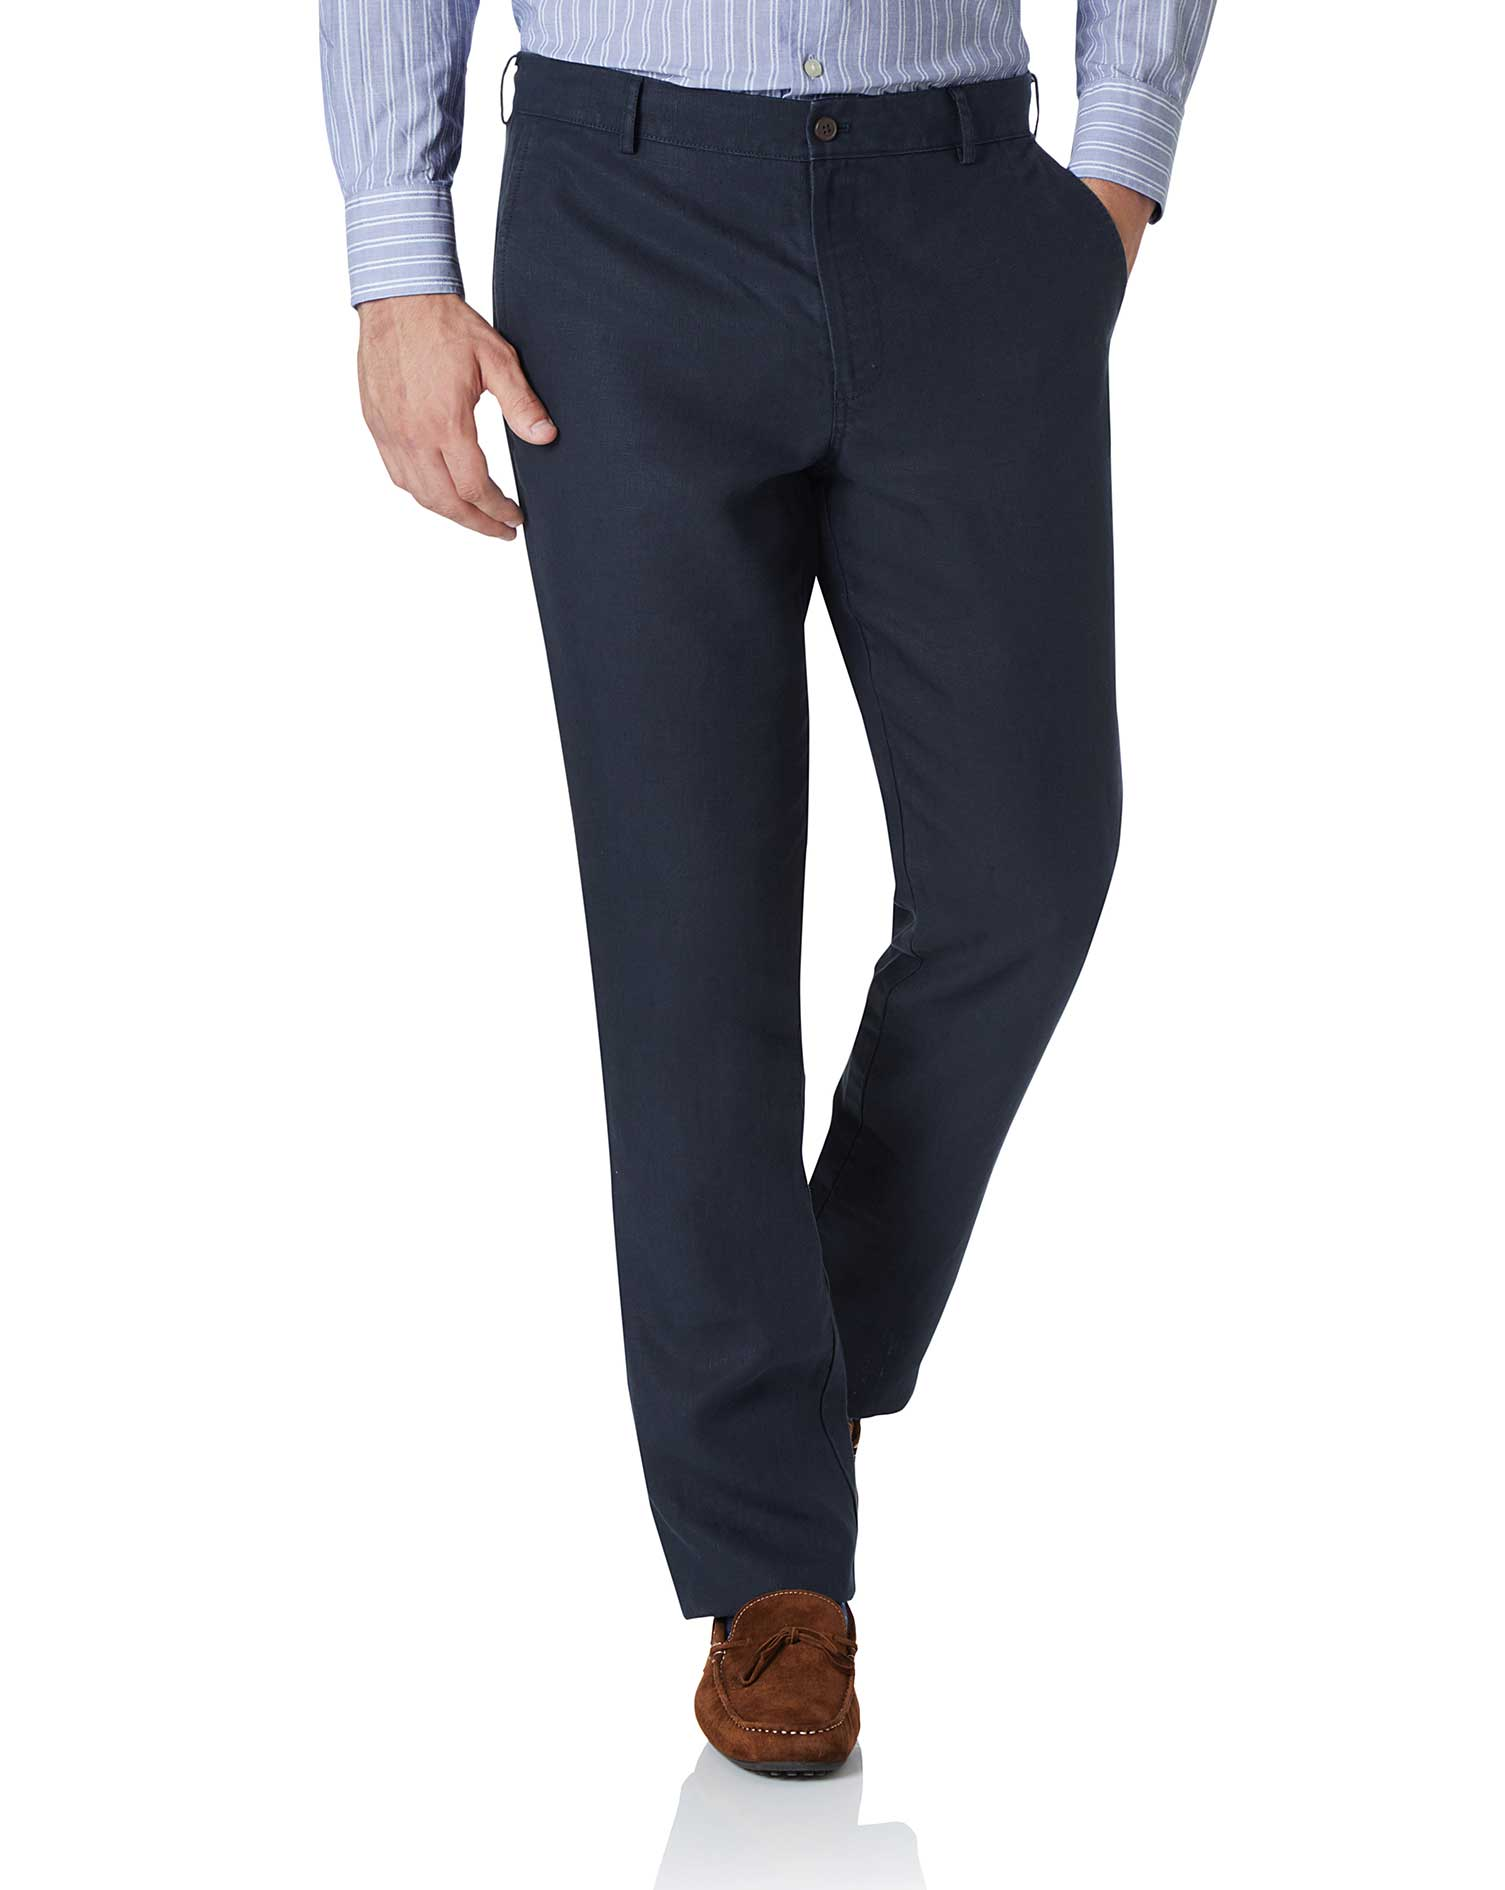 Navy Extra Slim Fit Easy Care Linen Trousers Size W36 L34 by Charles Tyrwhitt